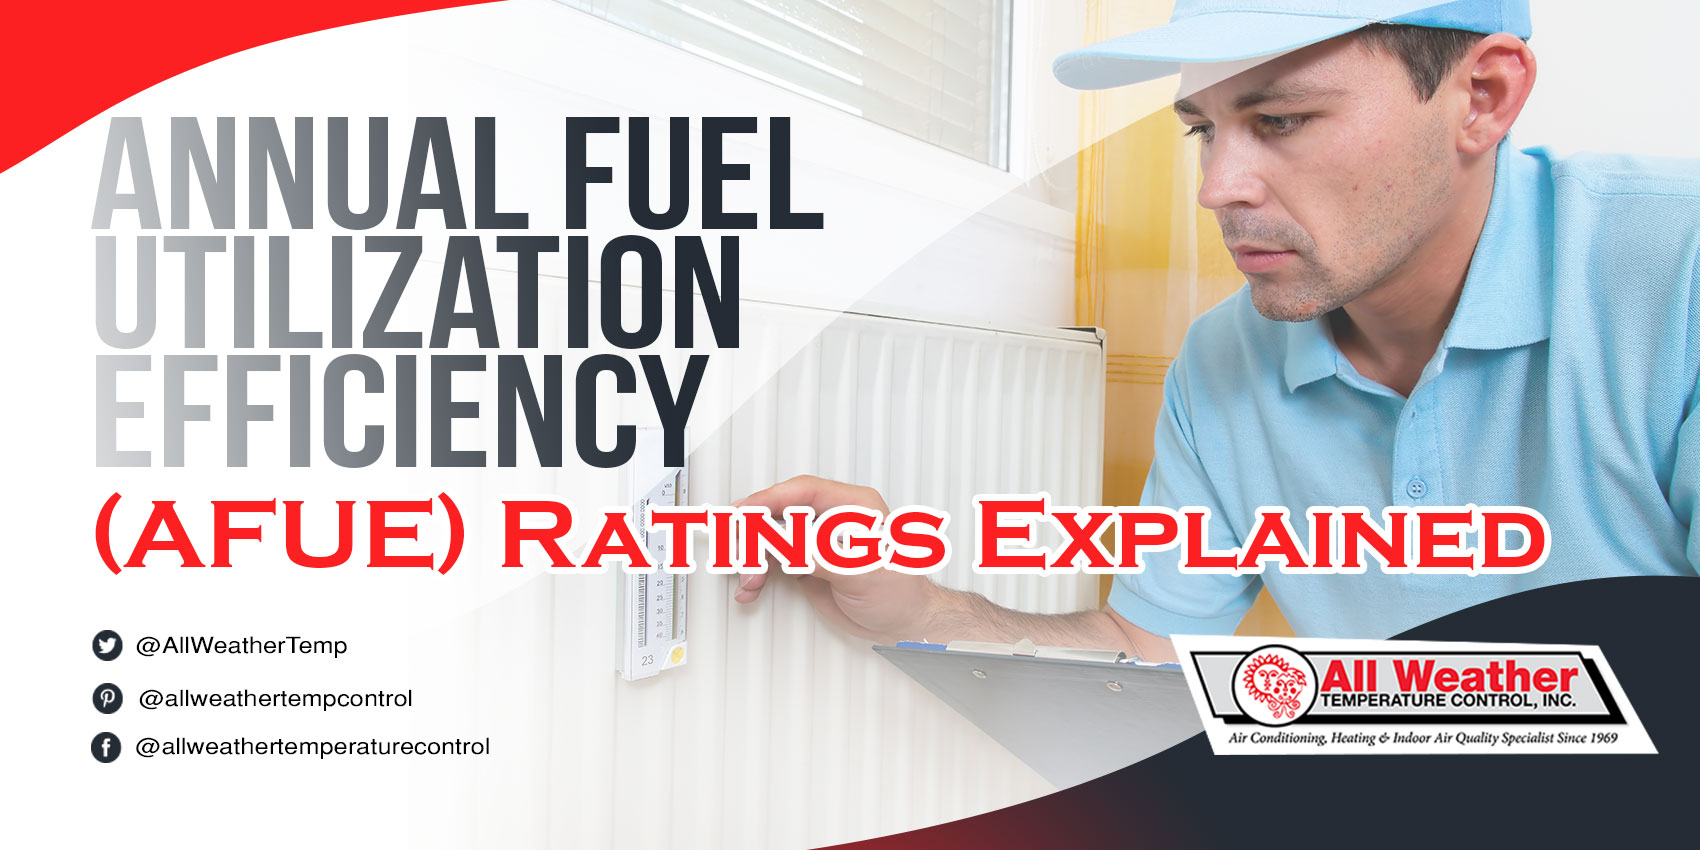 Annual Fuel Utilization Efficiency (AFUE) Ratings Explained